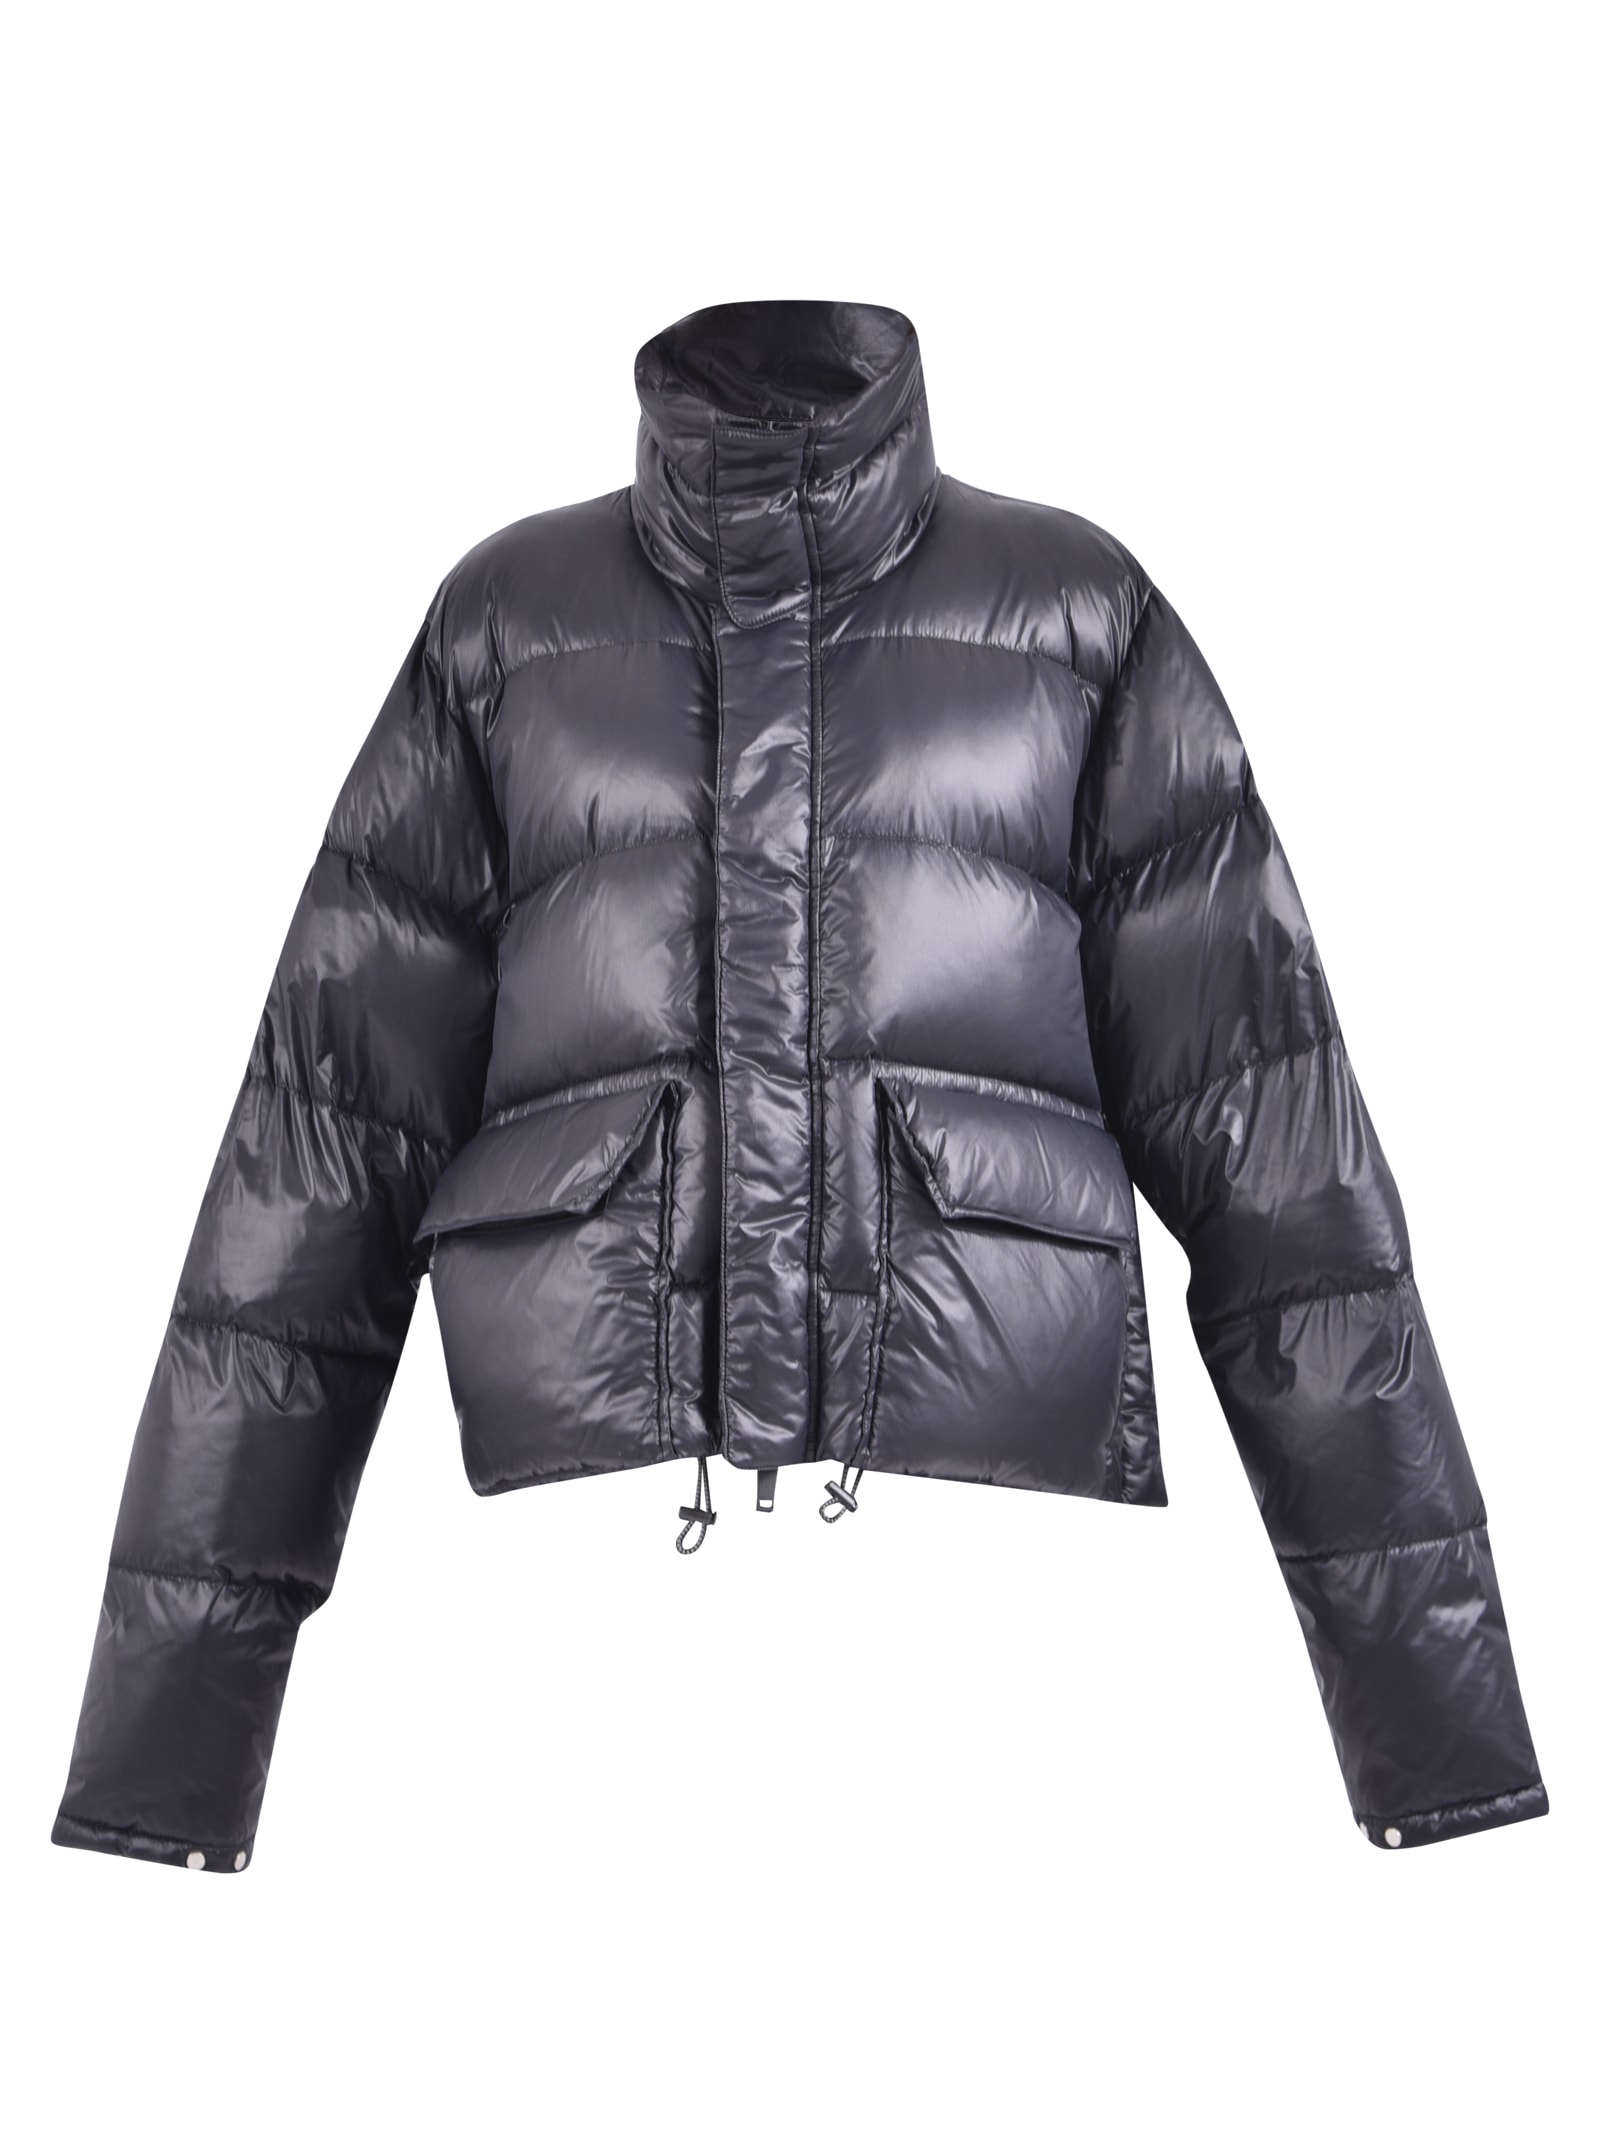 Ben Taverniti Unravel Project Padded Jacket